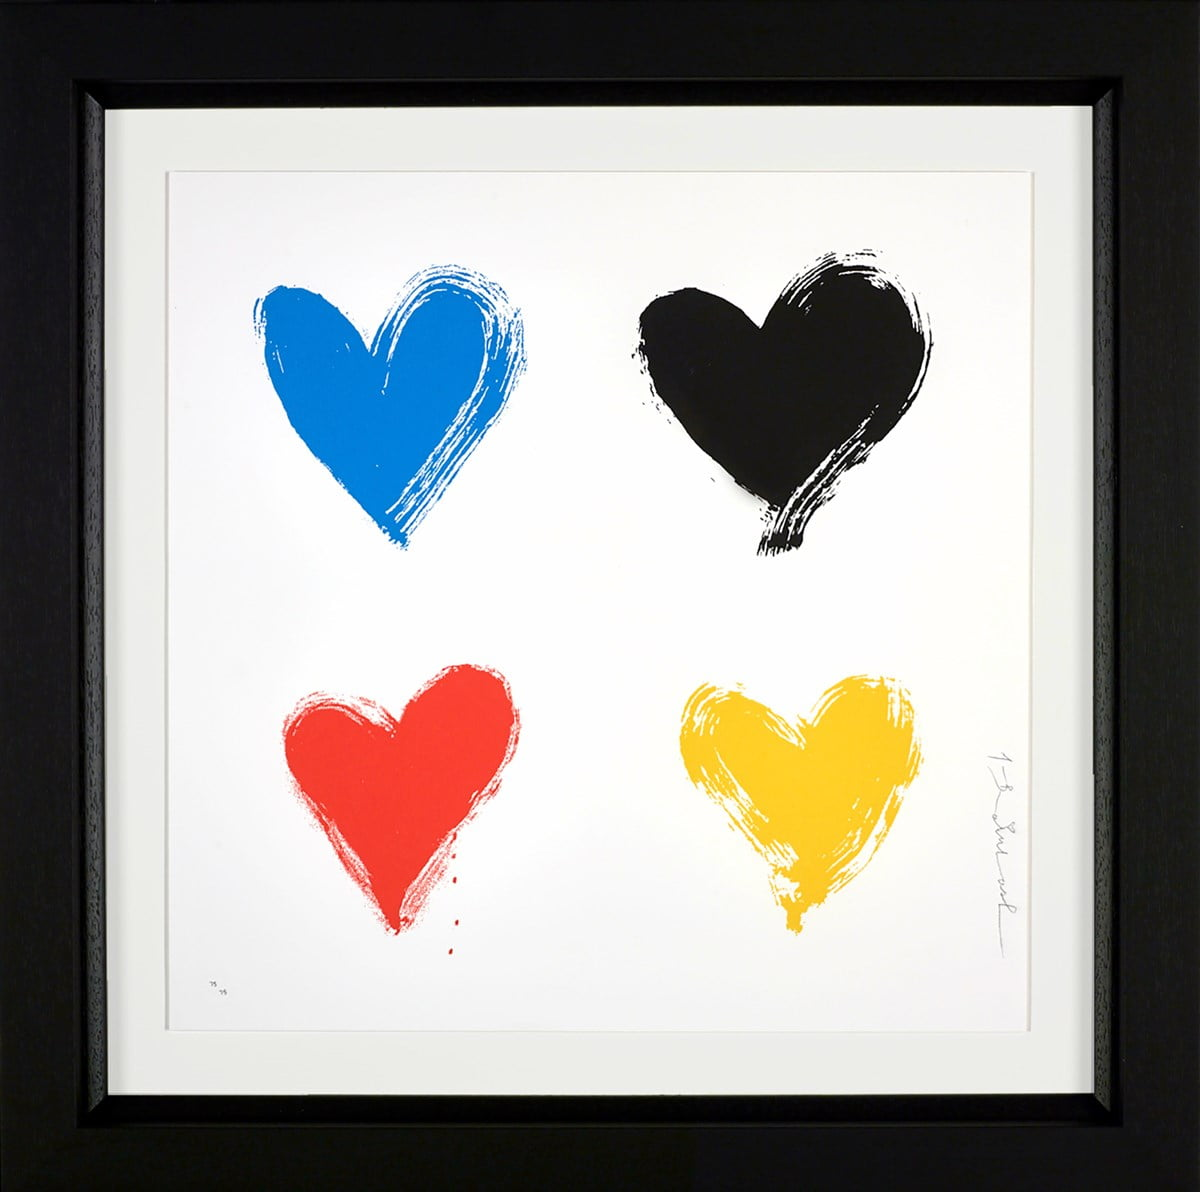 All You Need is He(ART) Small ~ Mr Brainwash